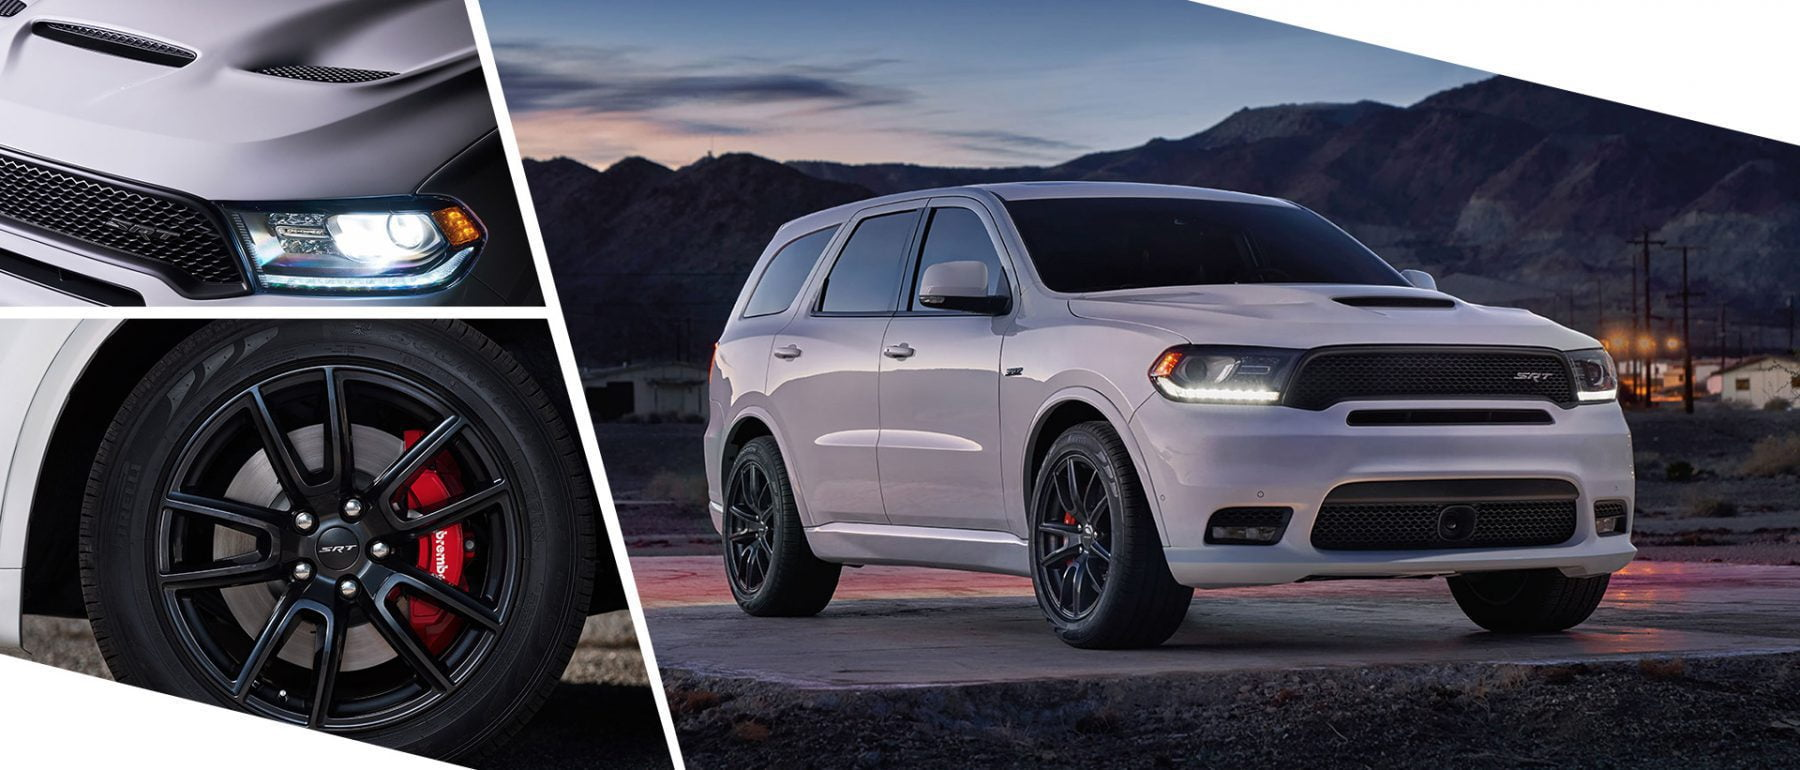 2019-dodge-durango-srt-exterior-white-Agt-Europe